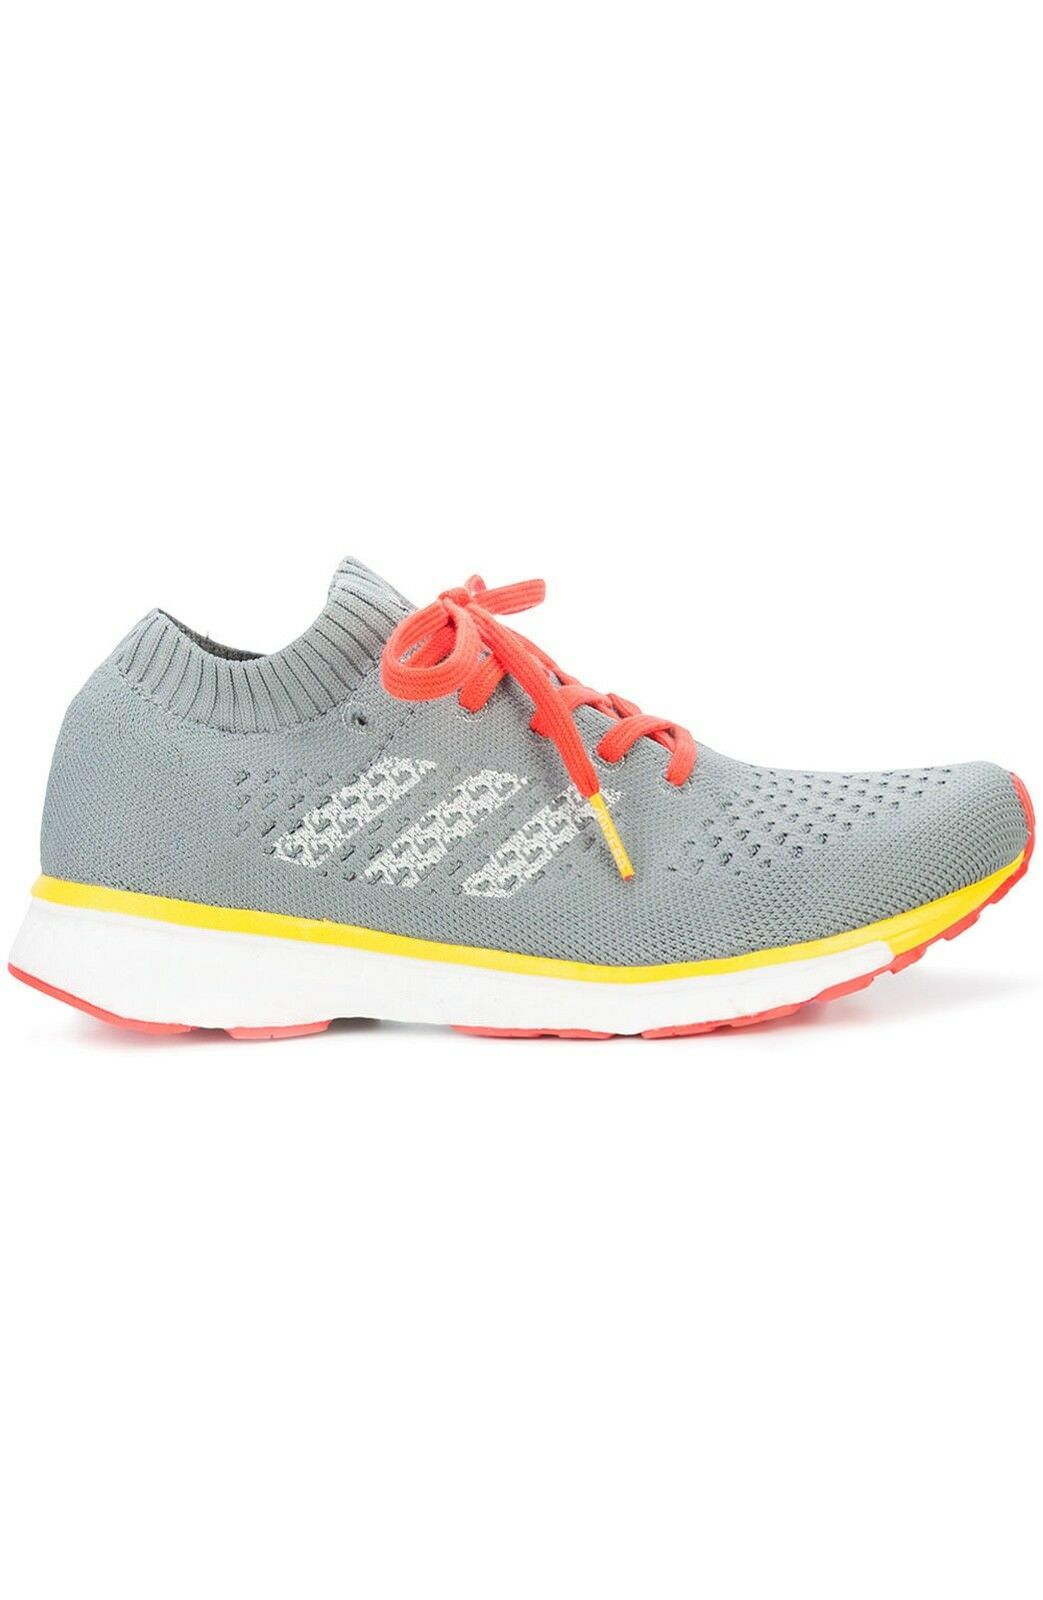 Brand New Adizero Prime Kolor Men's Athletic Fashion Sneakers Price reduction